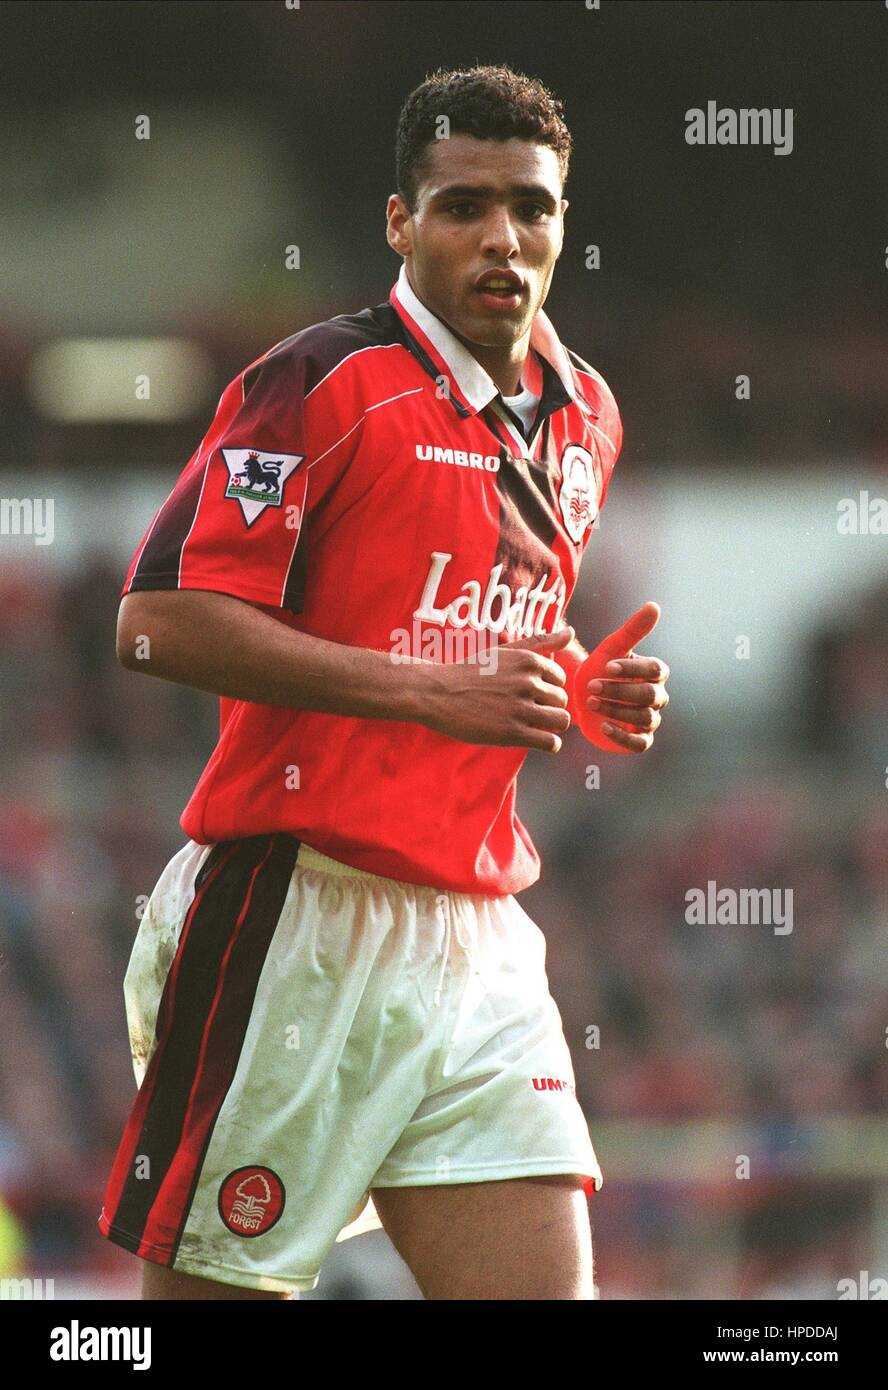 PIERRE VAN HOOIJDONK NOTTINGHAM FOREST FC 15 March 1997 - Stock Image 1aca12d962a80